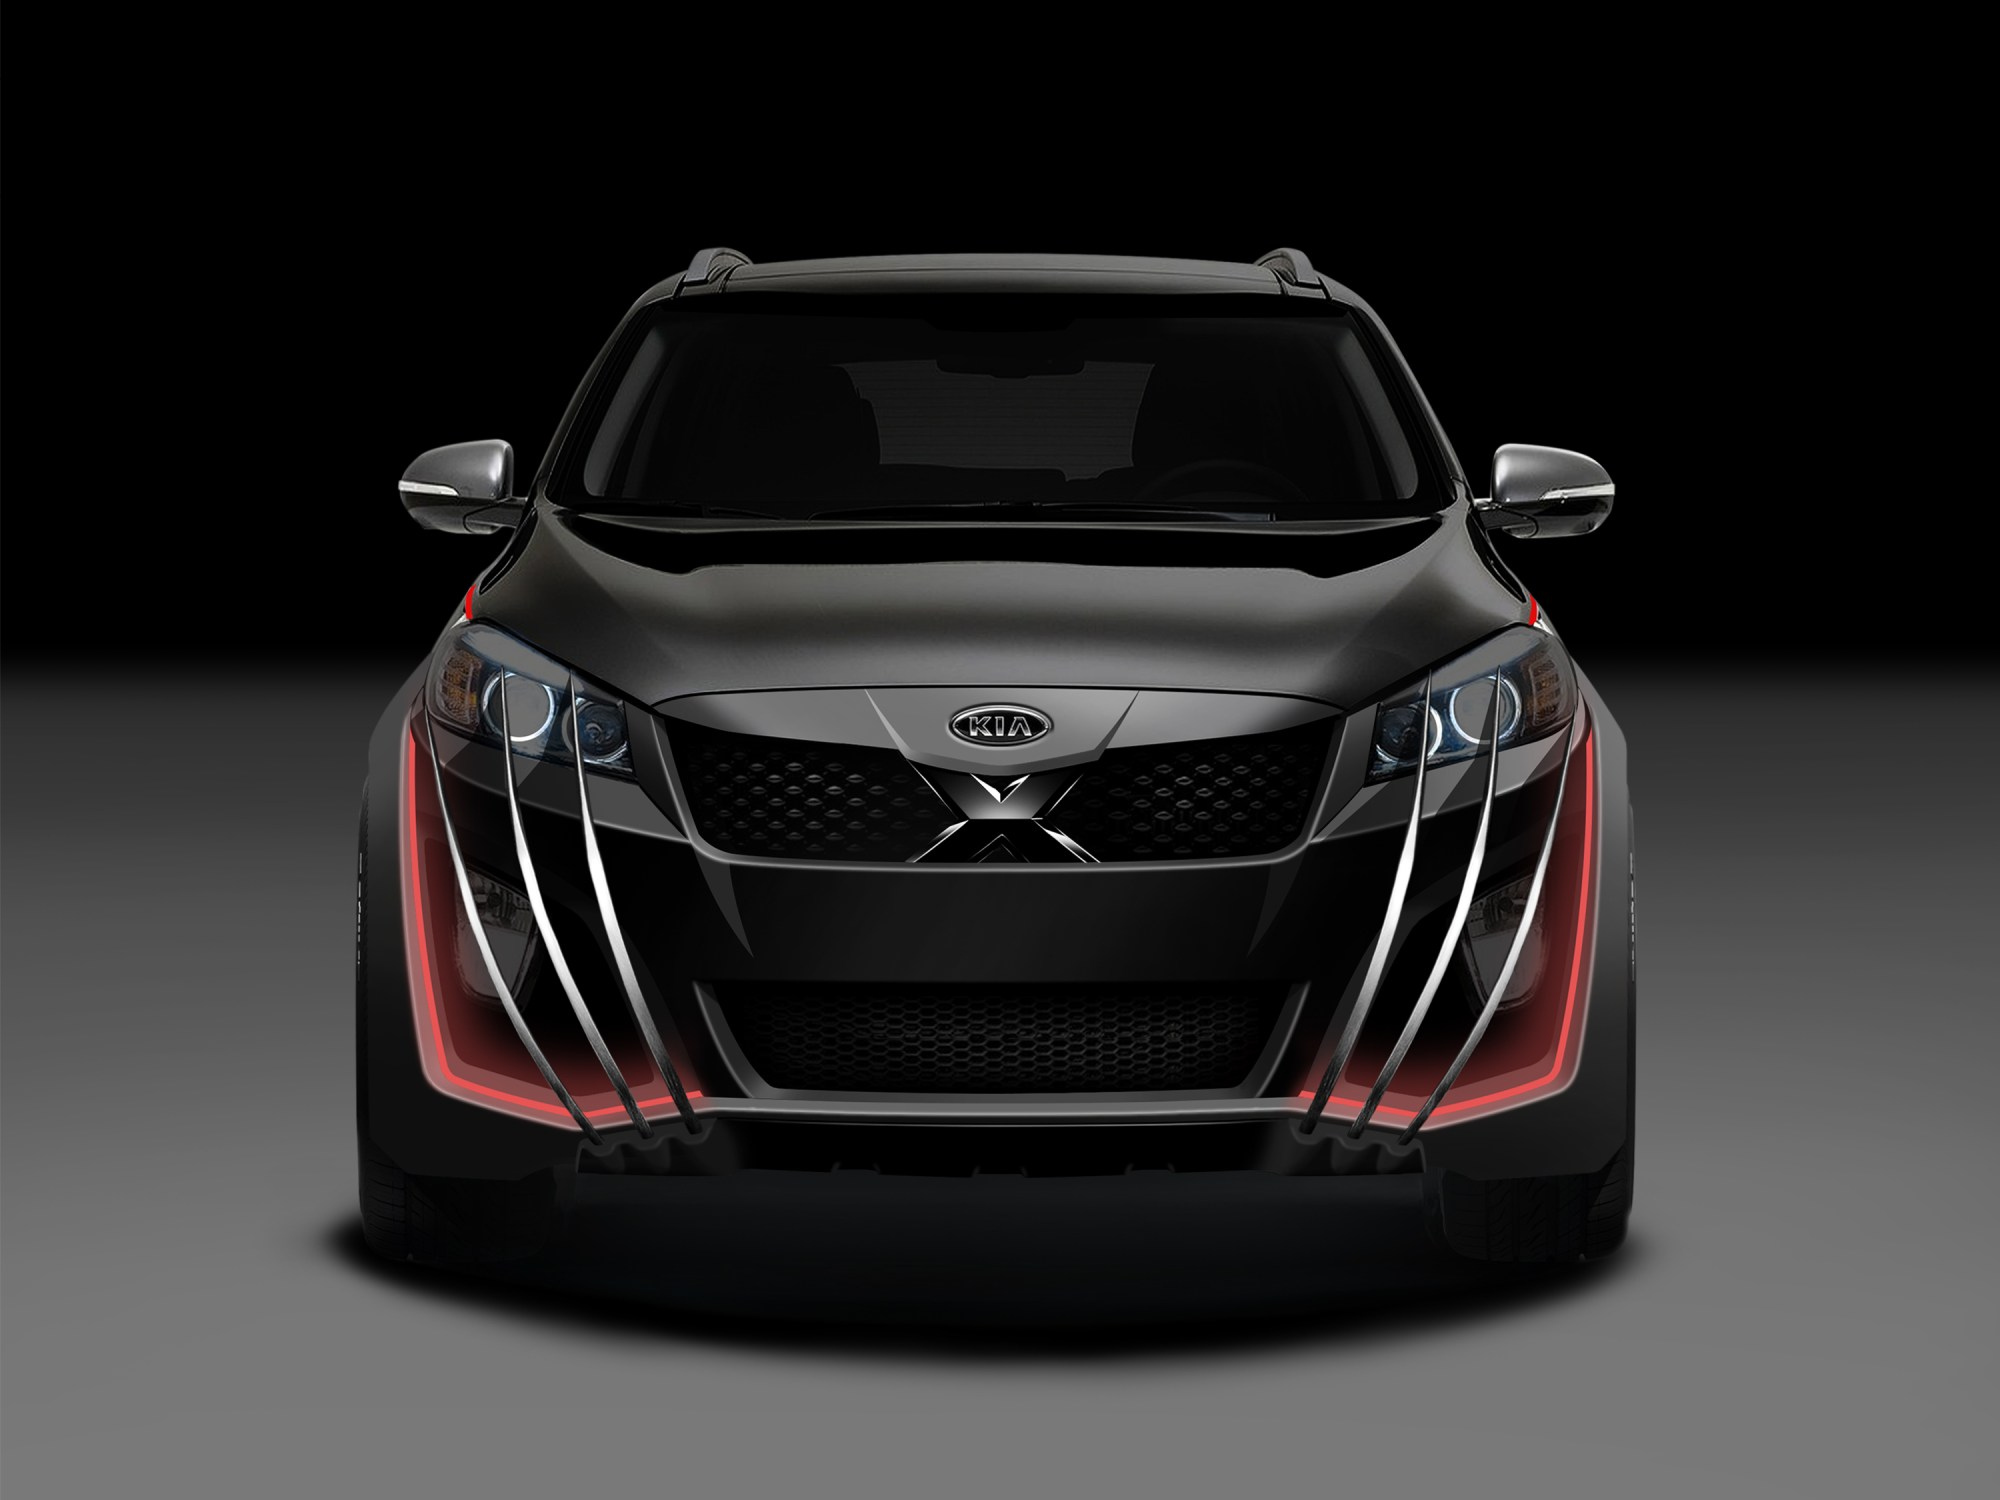 hight resolution of download image kia x car front